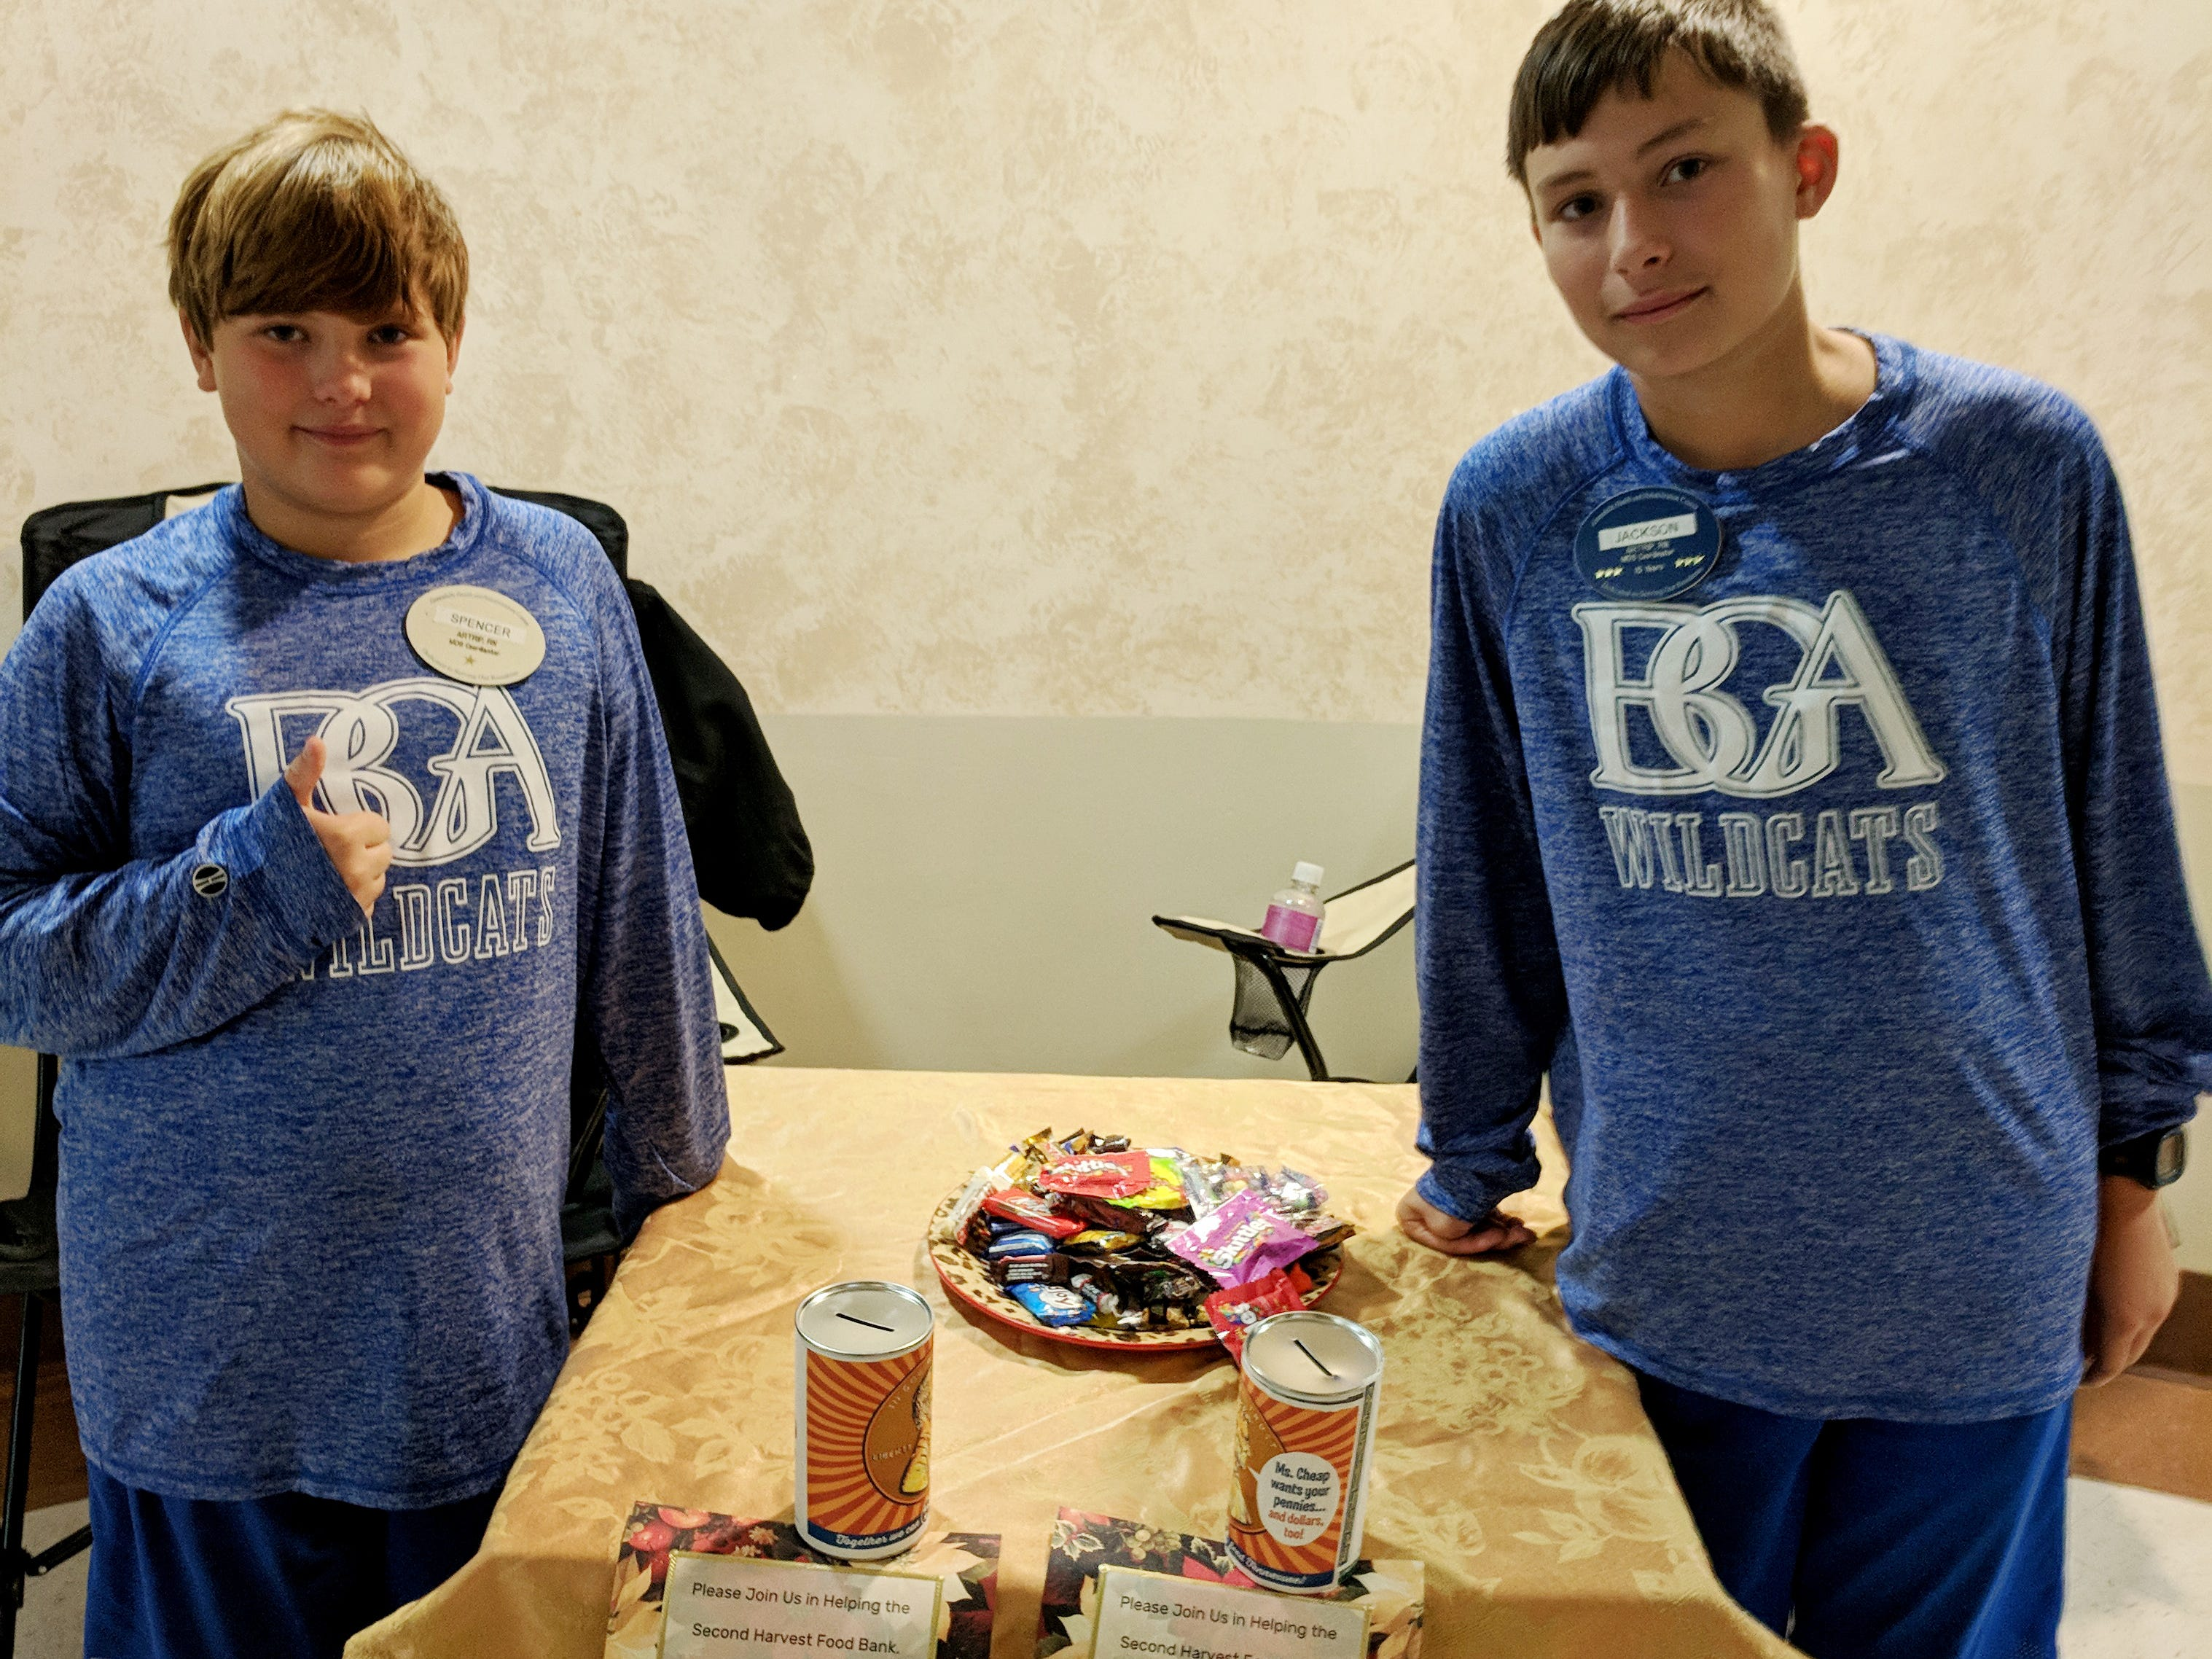 Brothers Spencer Artrip (left) and Jackson Artrip (right) took their Halloween candy to their mom's office (Green Hills Health and Rehabilitation). People could get some candy for donations. They collected $55.91!